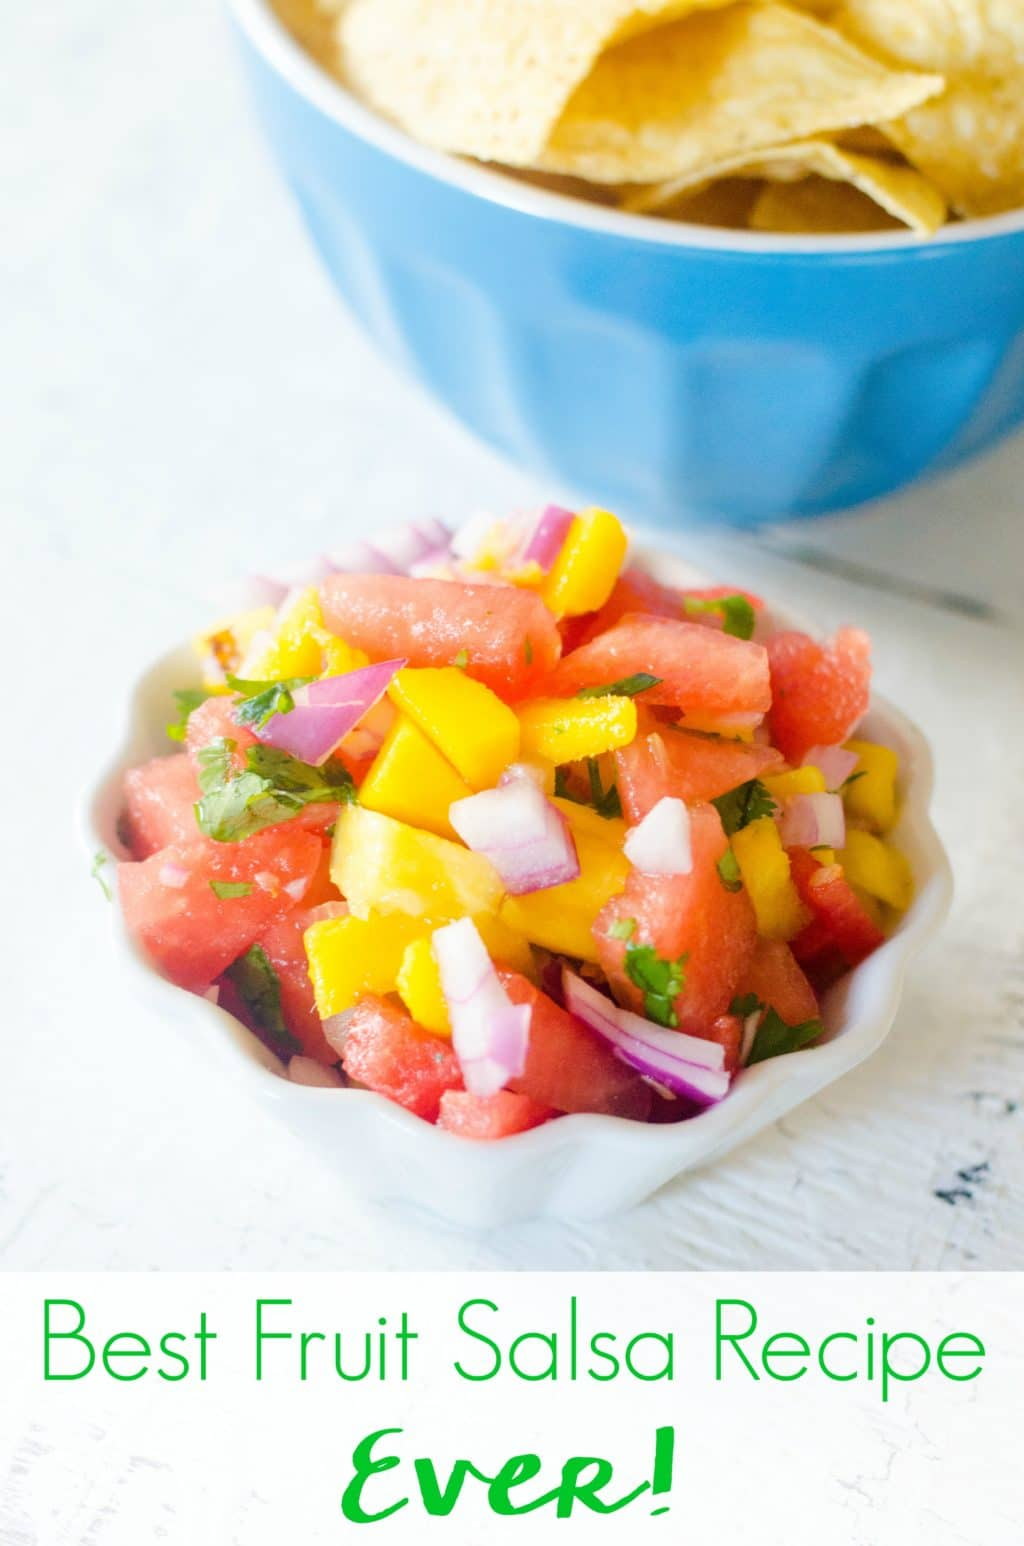 Looking for the best fruit salsa recipe ever? You've found it! This easy to make recipe is great on tacos, chips, and a great tropical fruit salsa for fish!